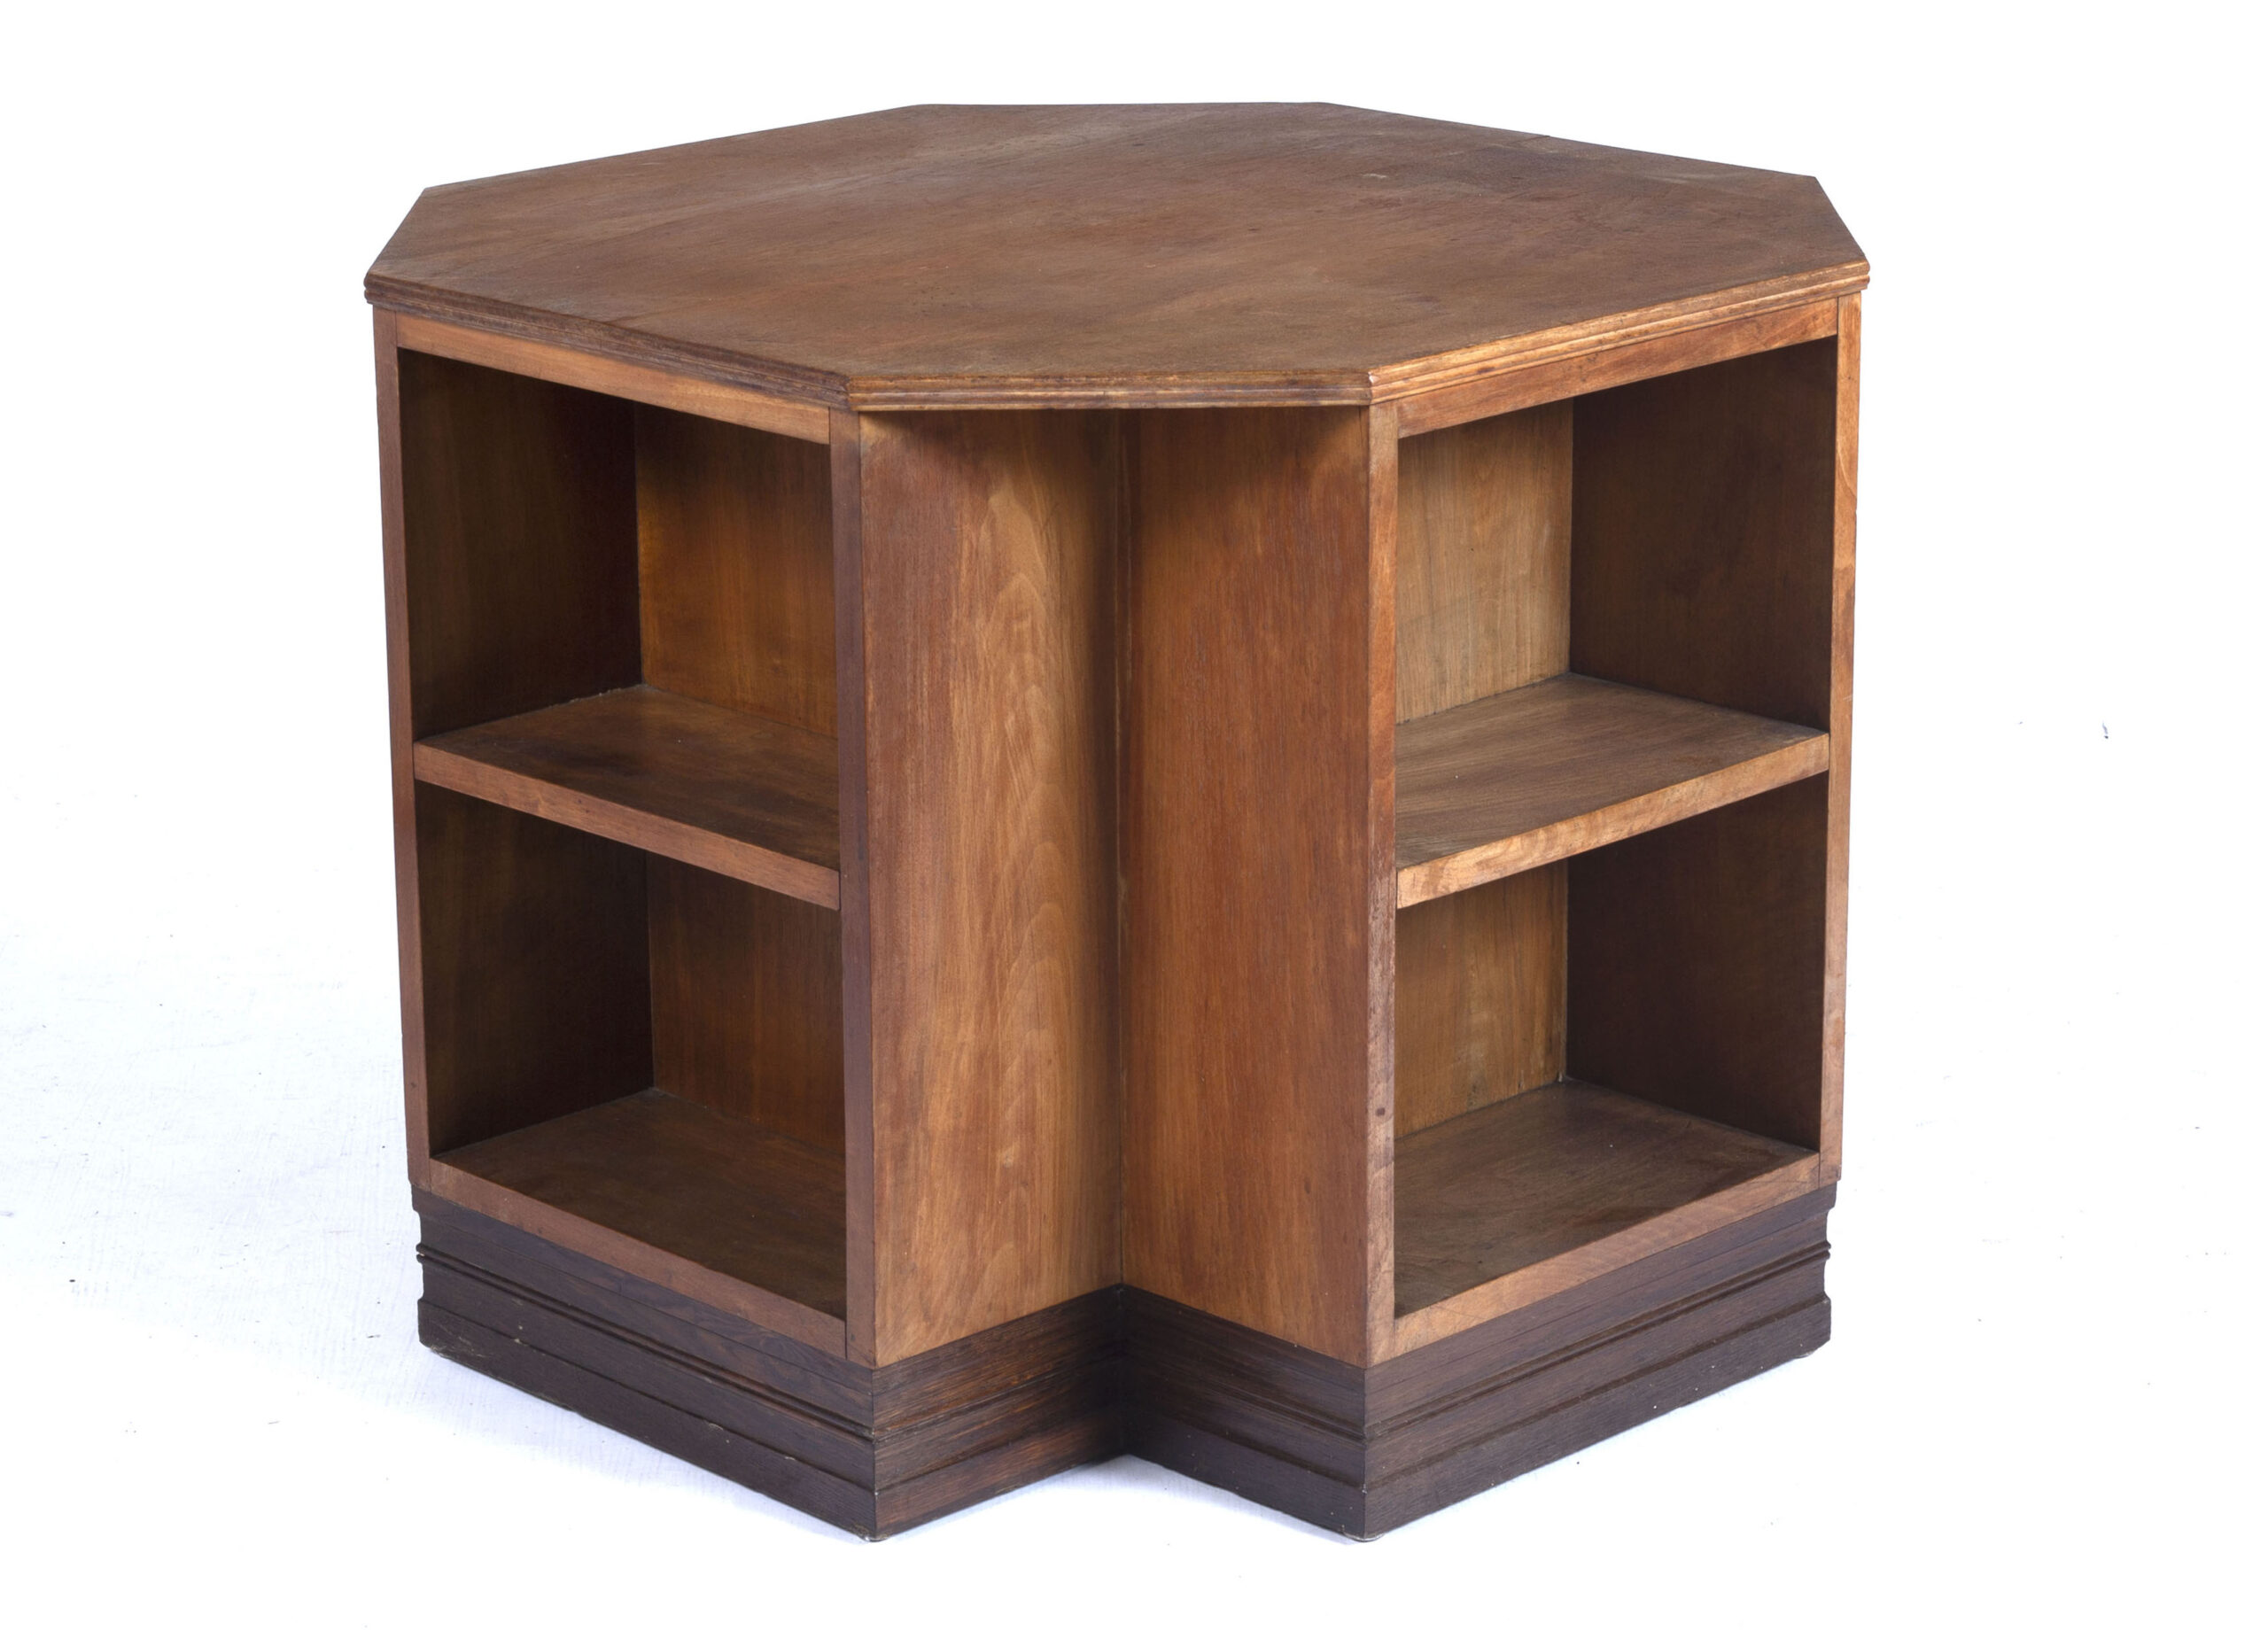 Gordon Russell English walnut and oak book table